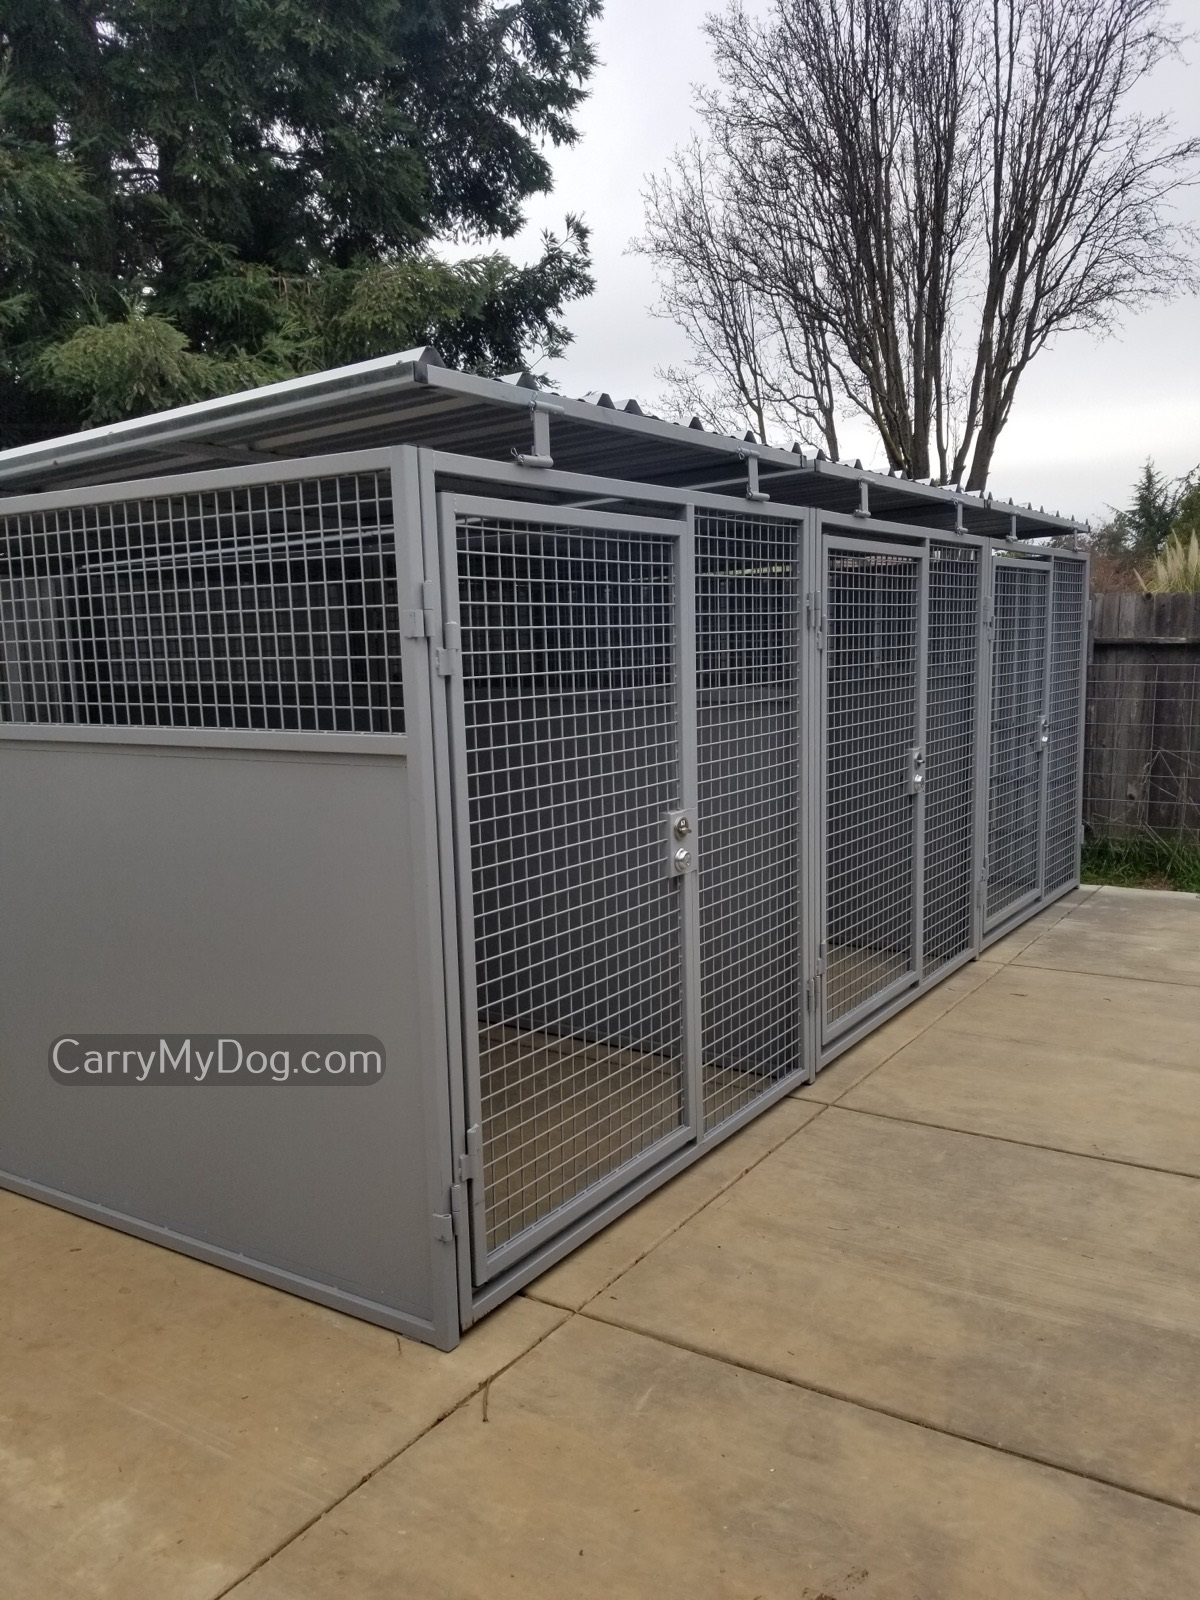 Outdoor Kennels & Runs by Xtreme Dog Crate from carrymydog.com